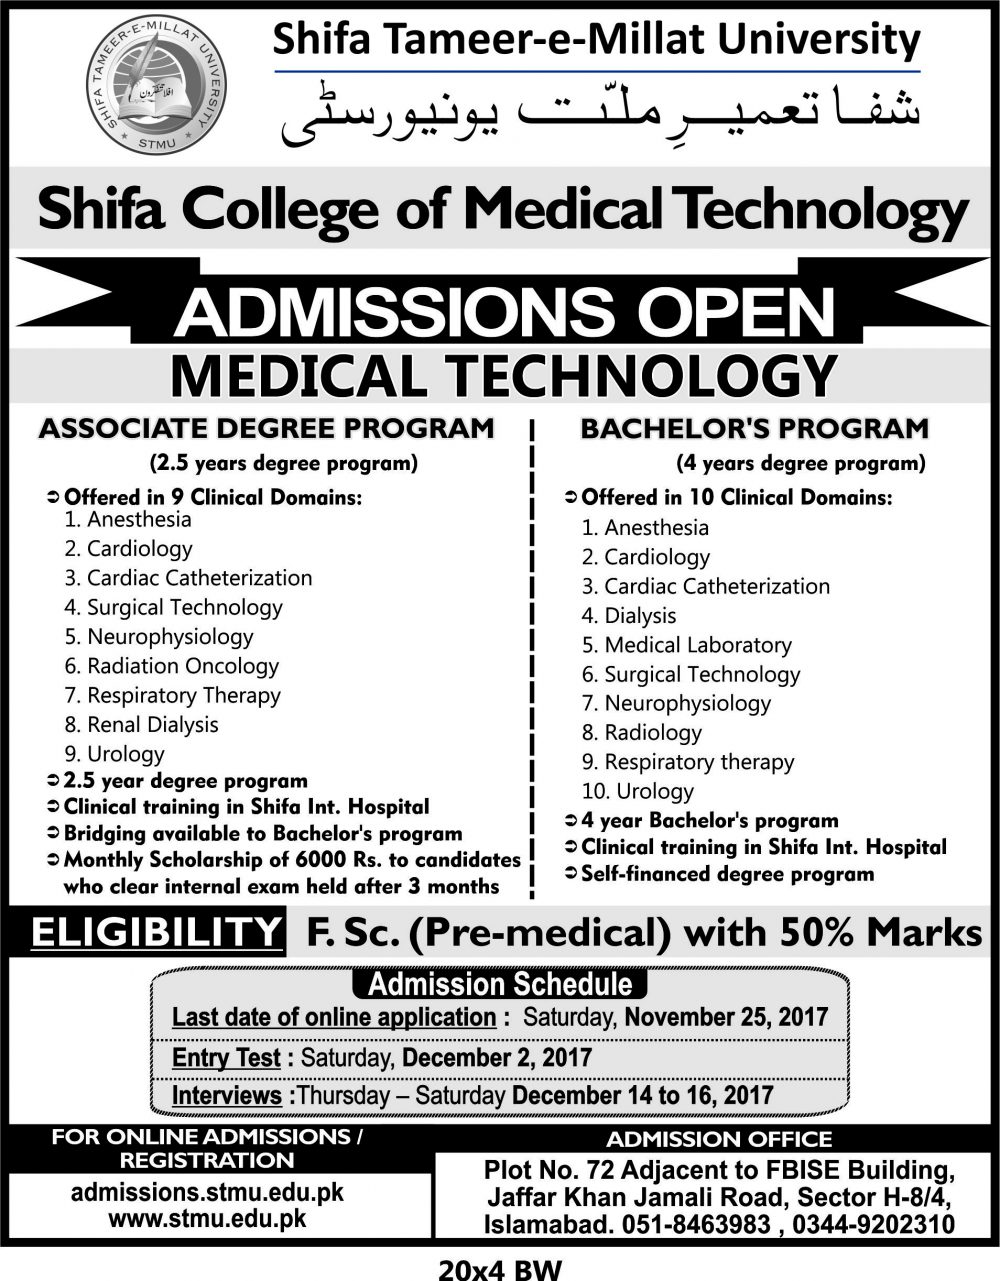 Shifa College of Medical Technology Admissions Open – 2017